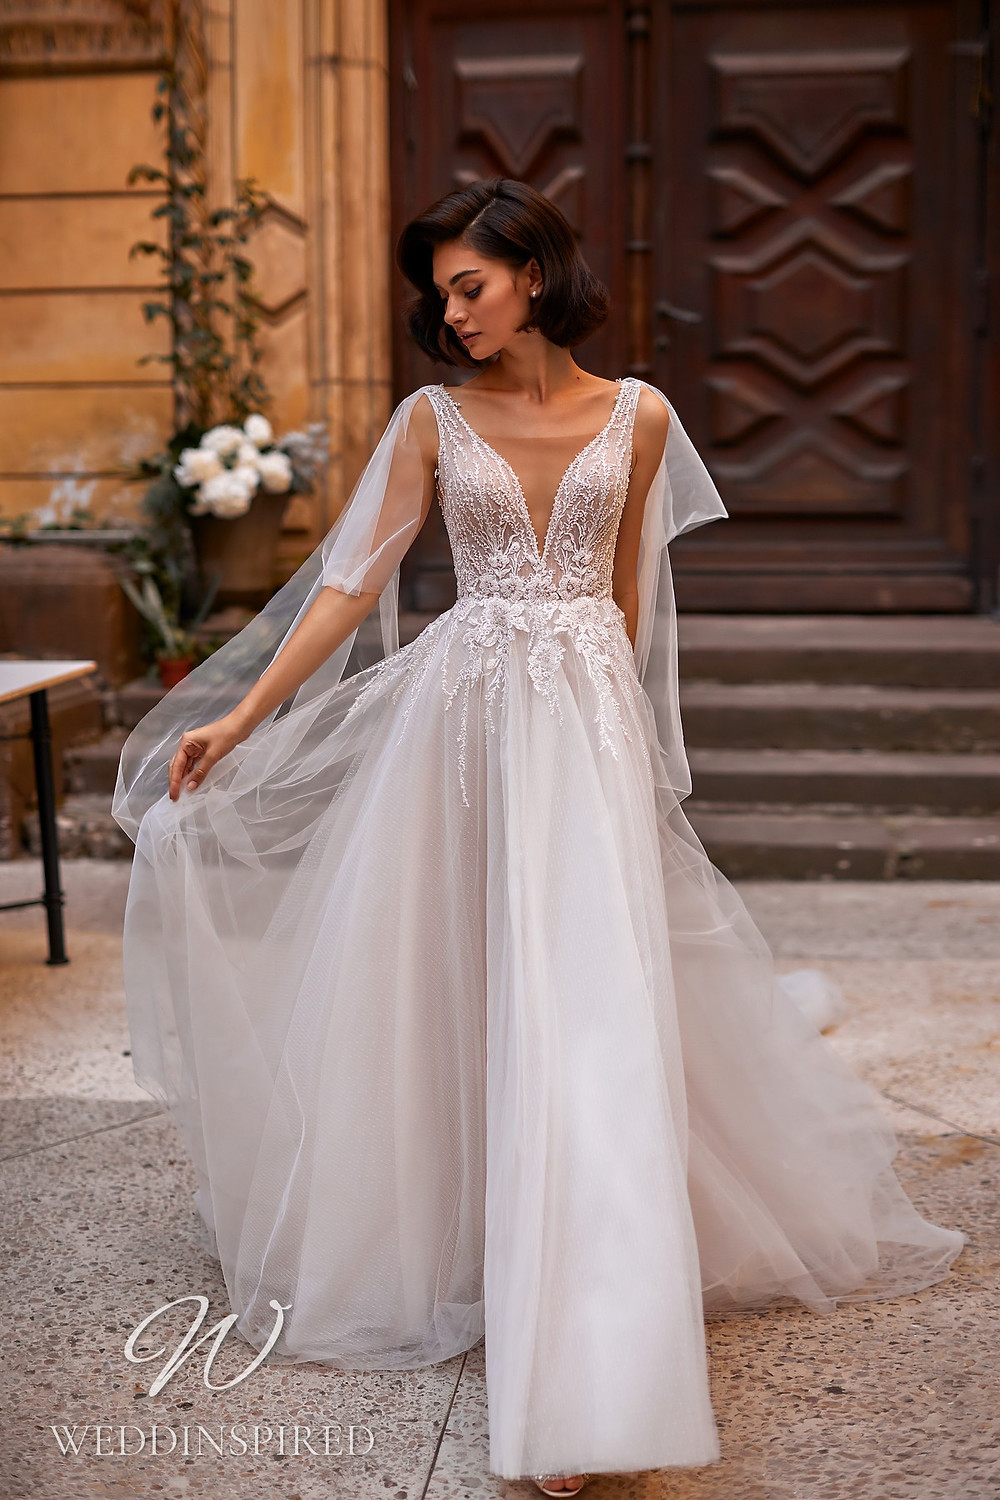 A Daria Karlozi 2021 tulle A-line wedding dress with a v neck